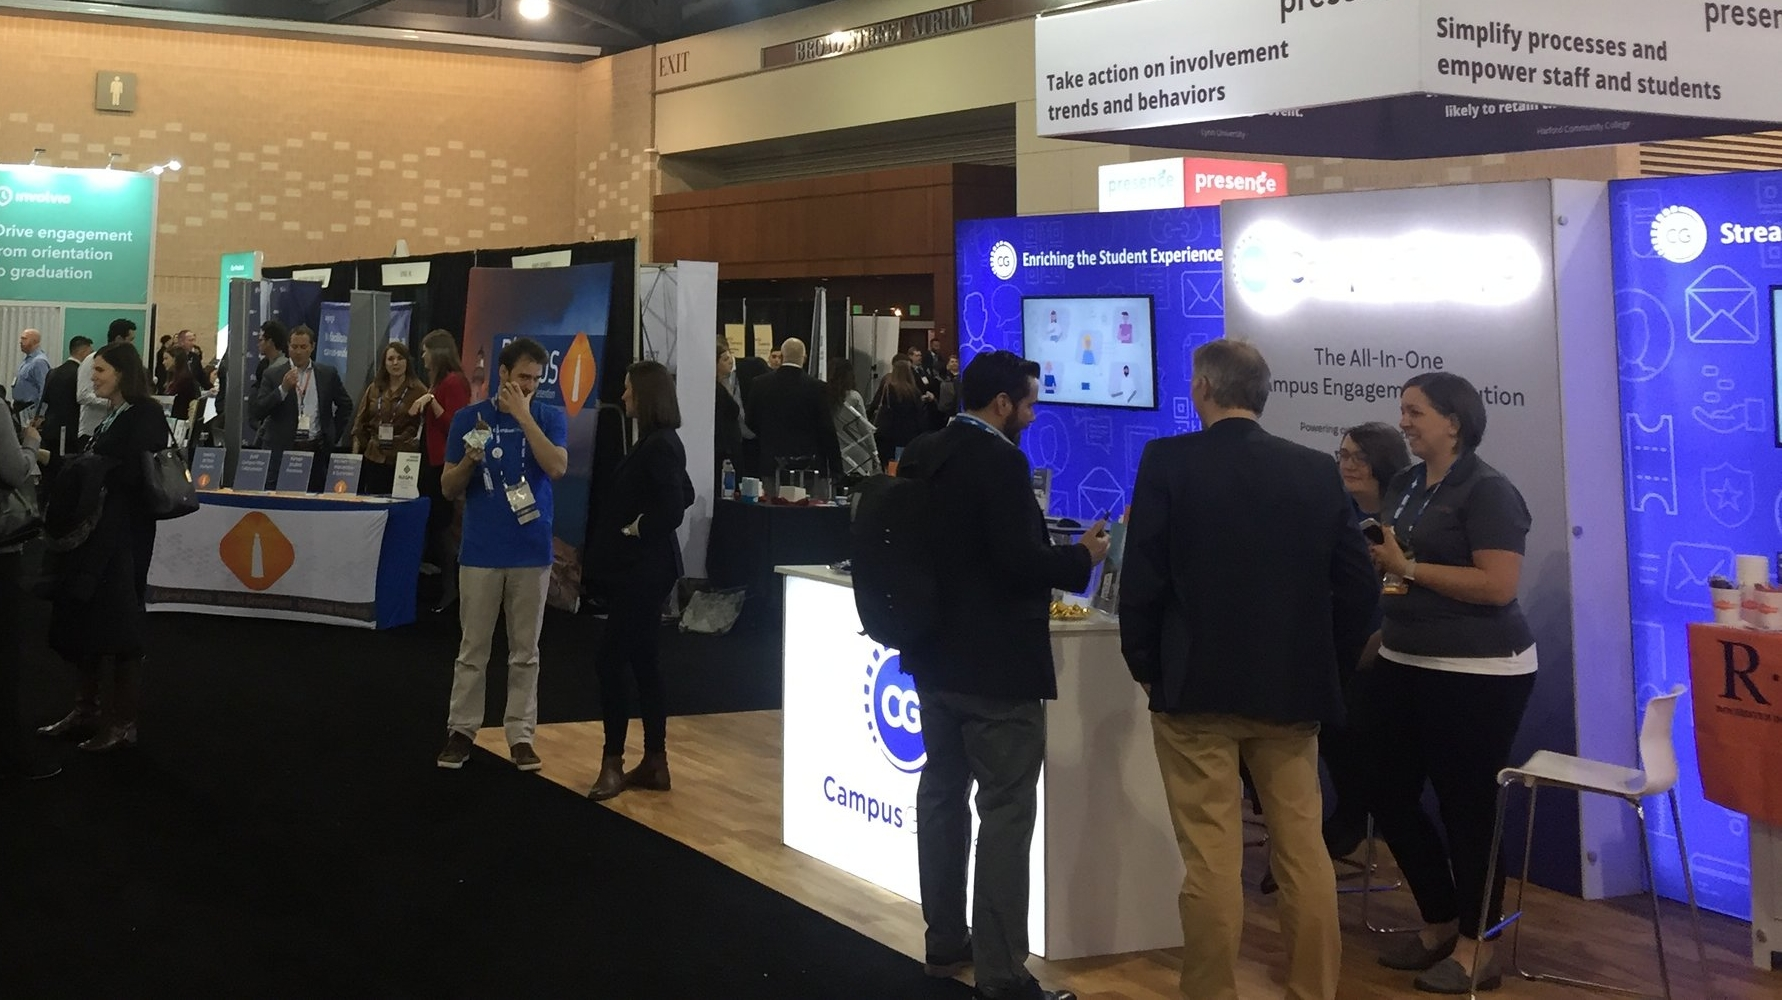 NASPA's vendor hall became a busy hub for conversations about student engagement. We were proud to be featured alongside so many outstanding companies working to improve higher education.